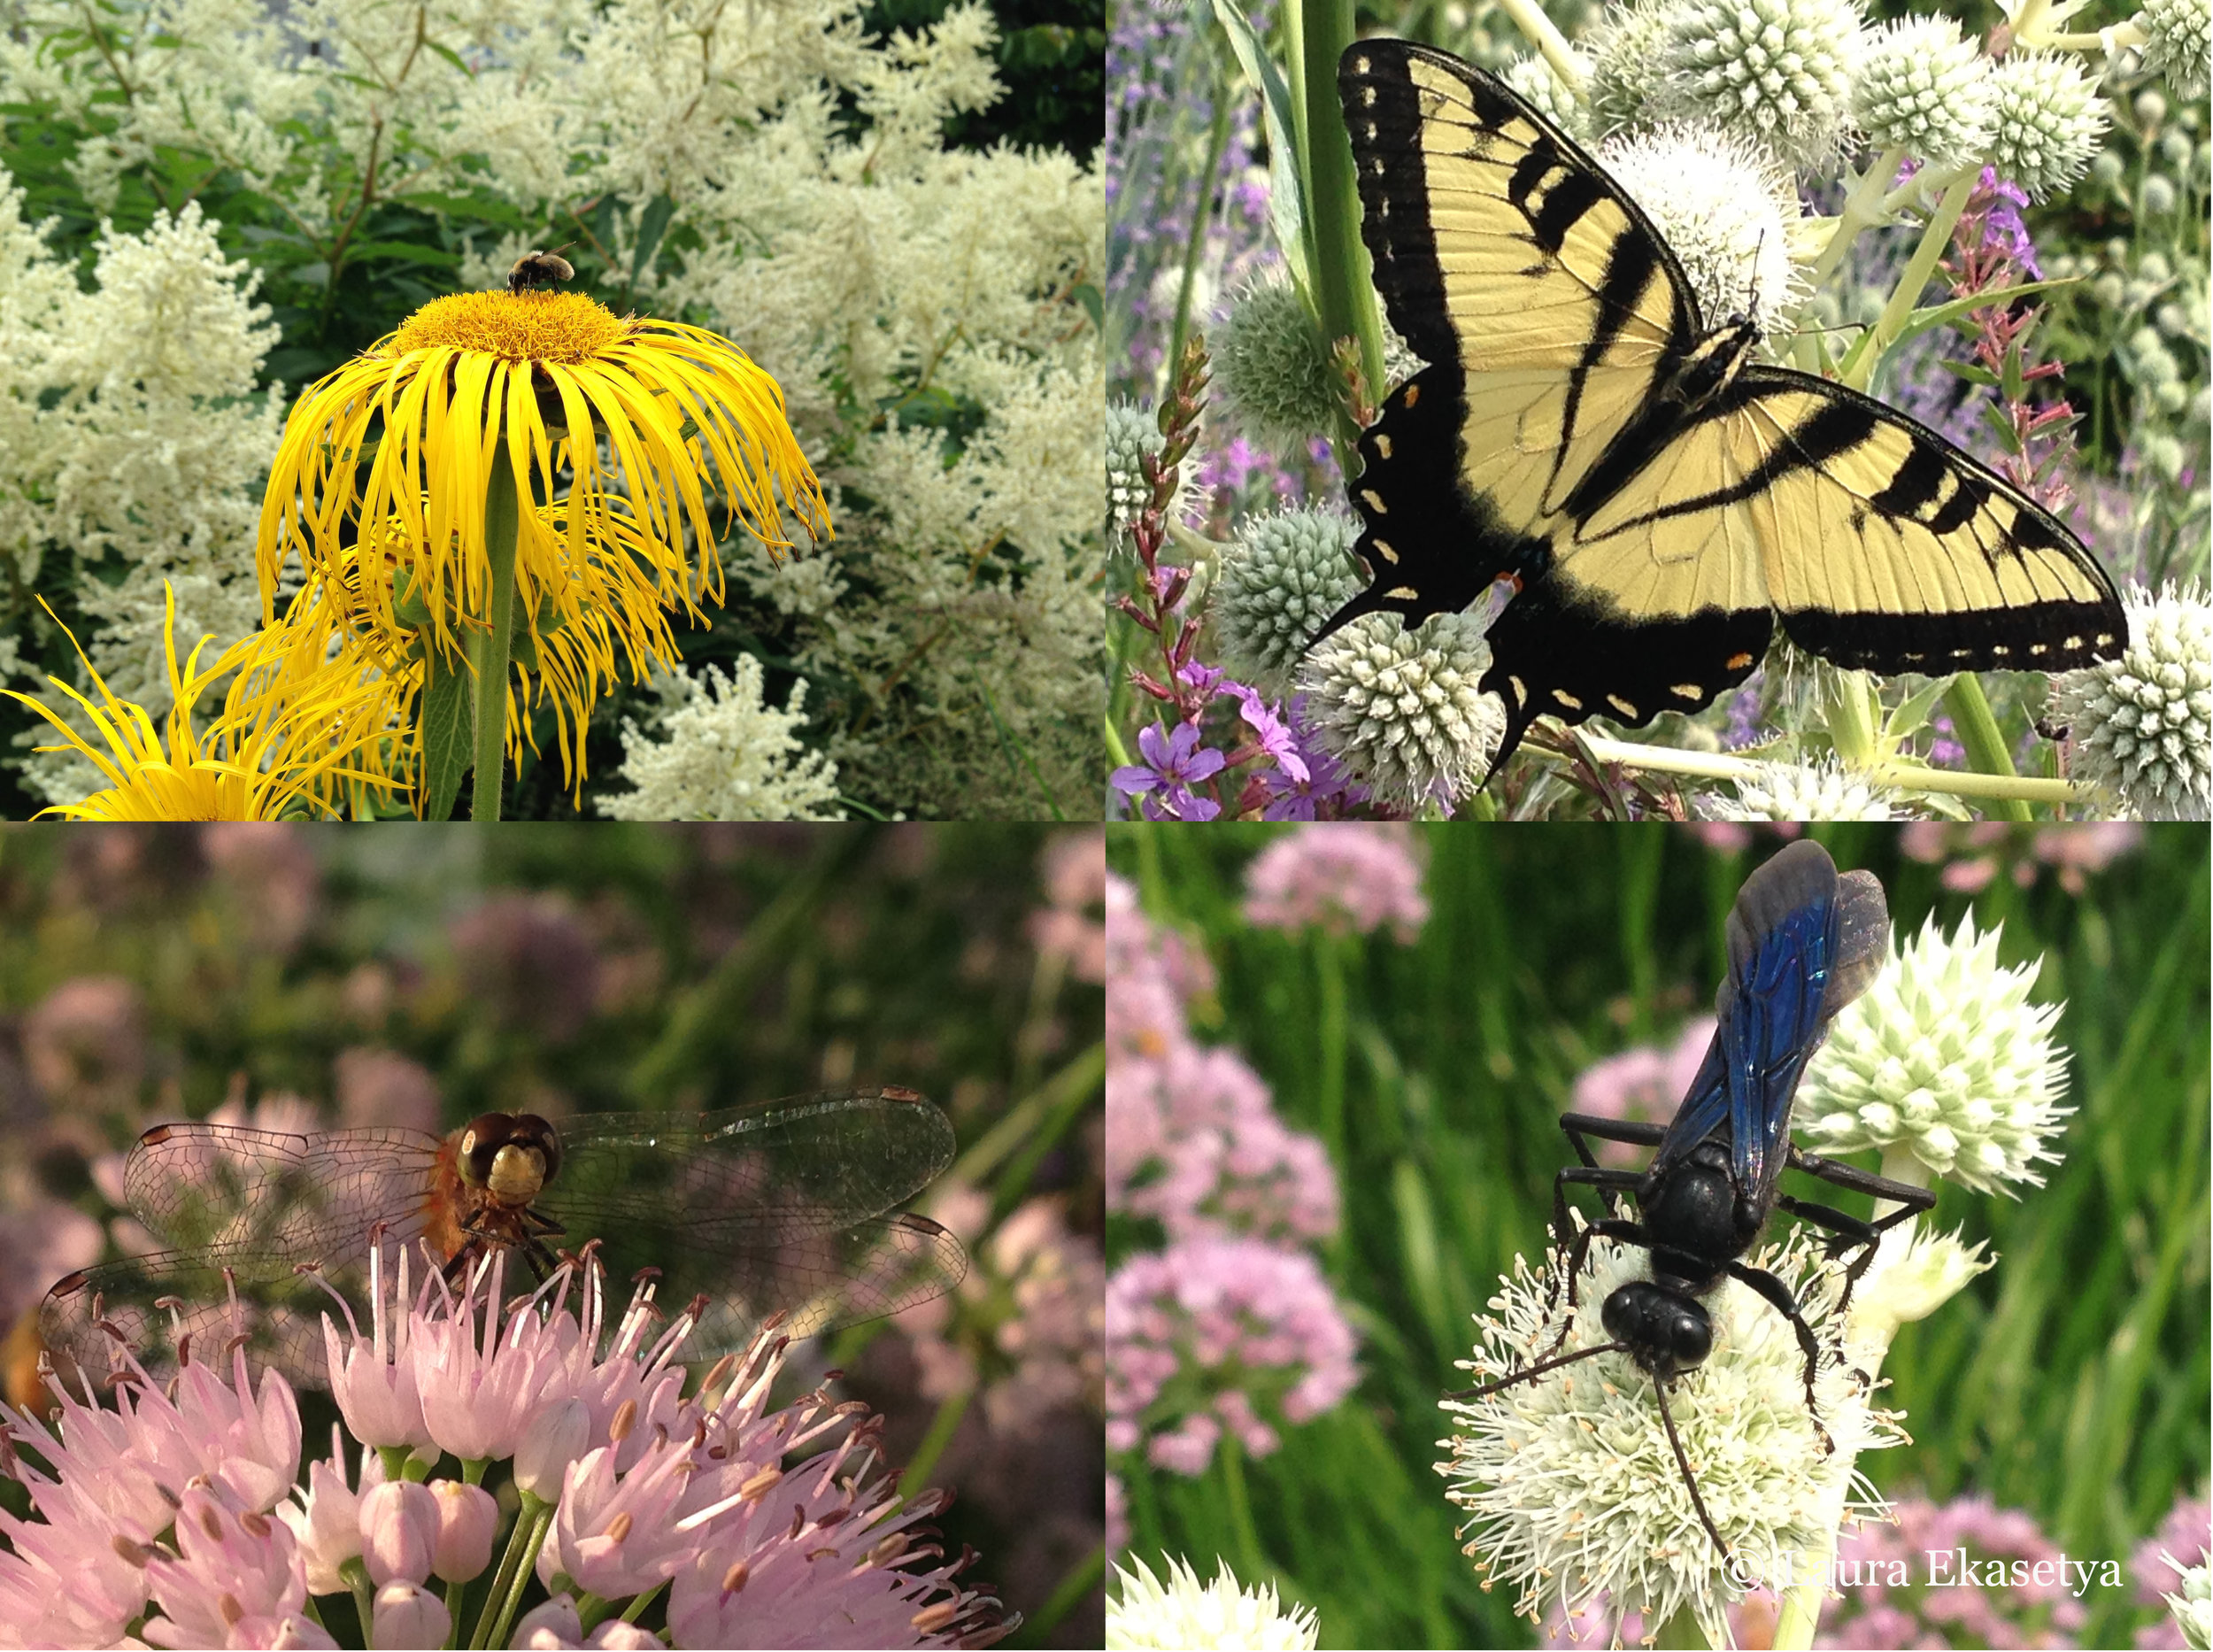 Insect visitors abound at the Lurie Garden (clockwise beginning left): Bee on Inula magnifica 'Sonnenstrahl' backed by Polygonum polymorphum; eastern swallowtail butterfly on Erygnium yuccifolium; great black wasp on Erygnium yuccifolium; dragonfly on Allium 'Summer Beauty'